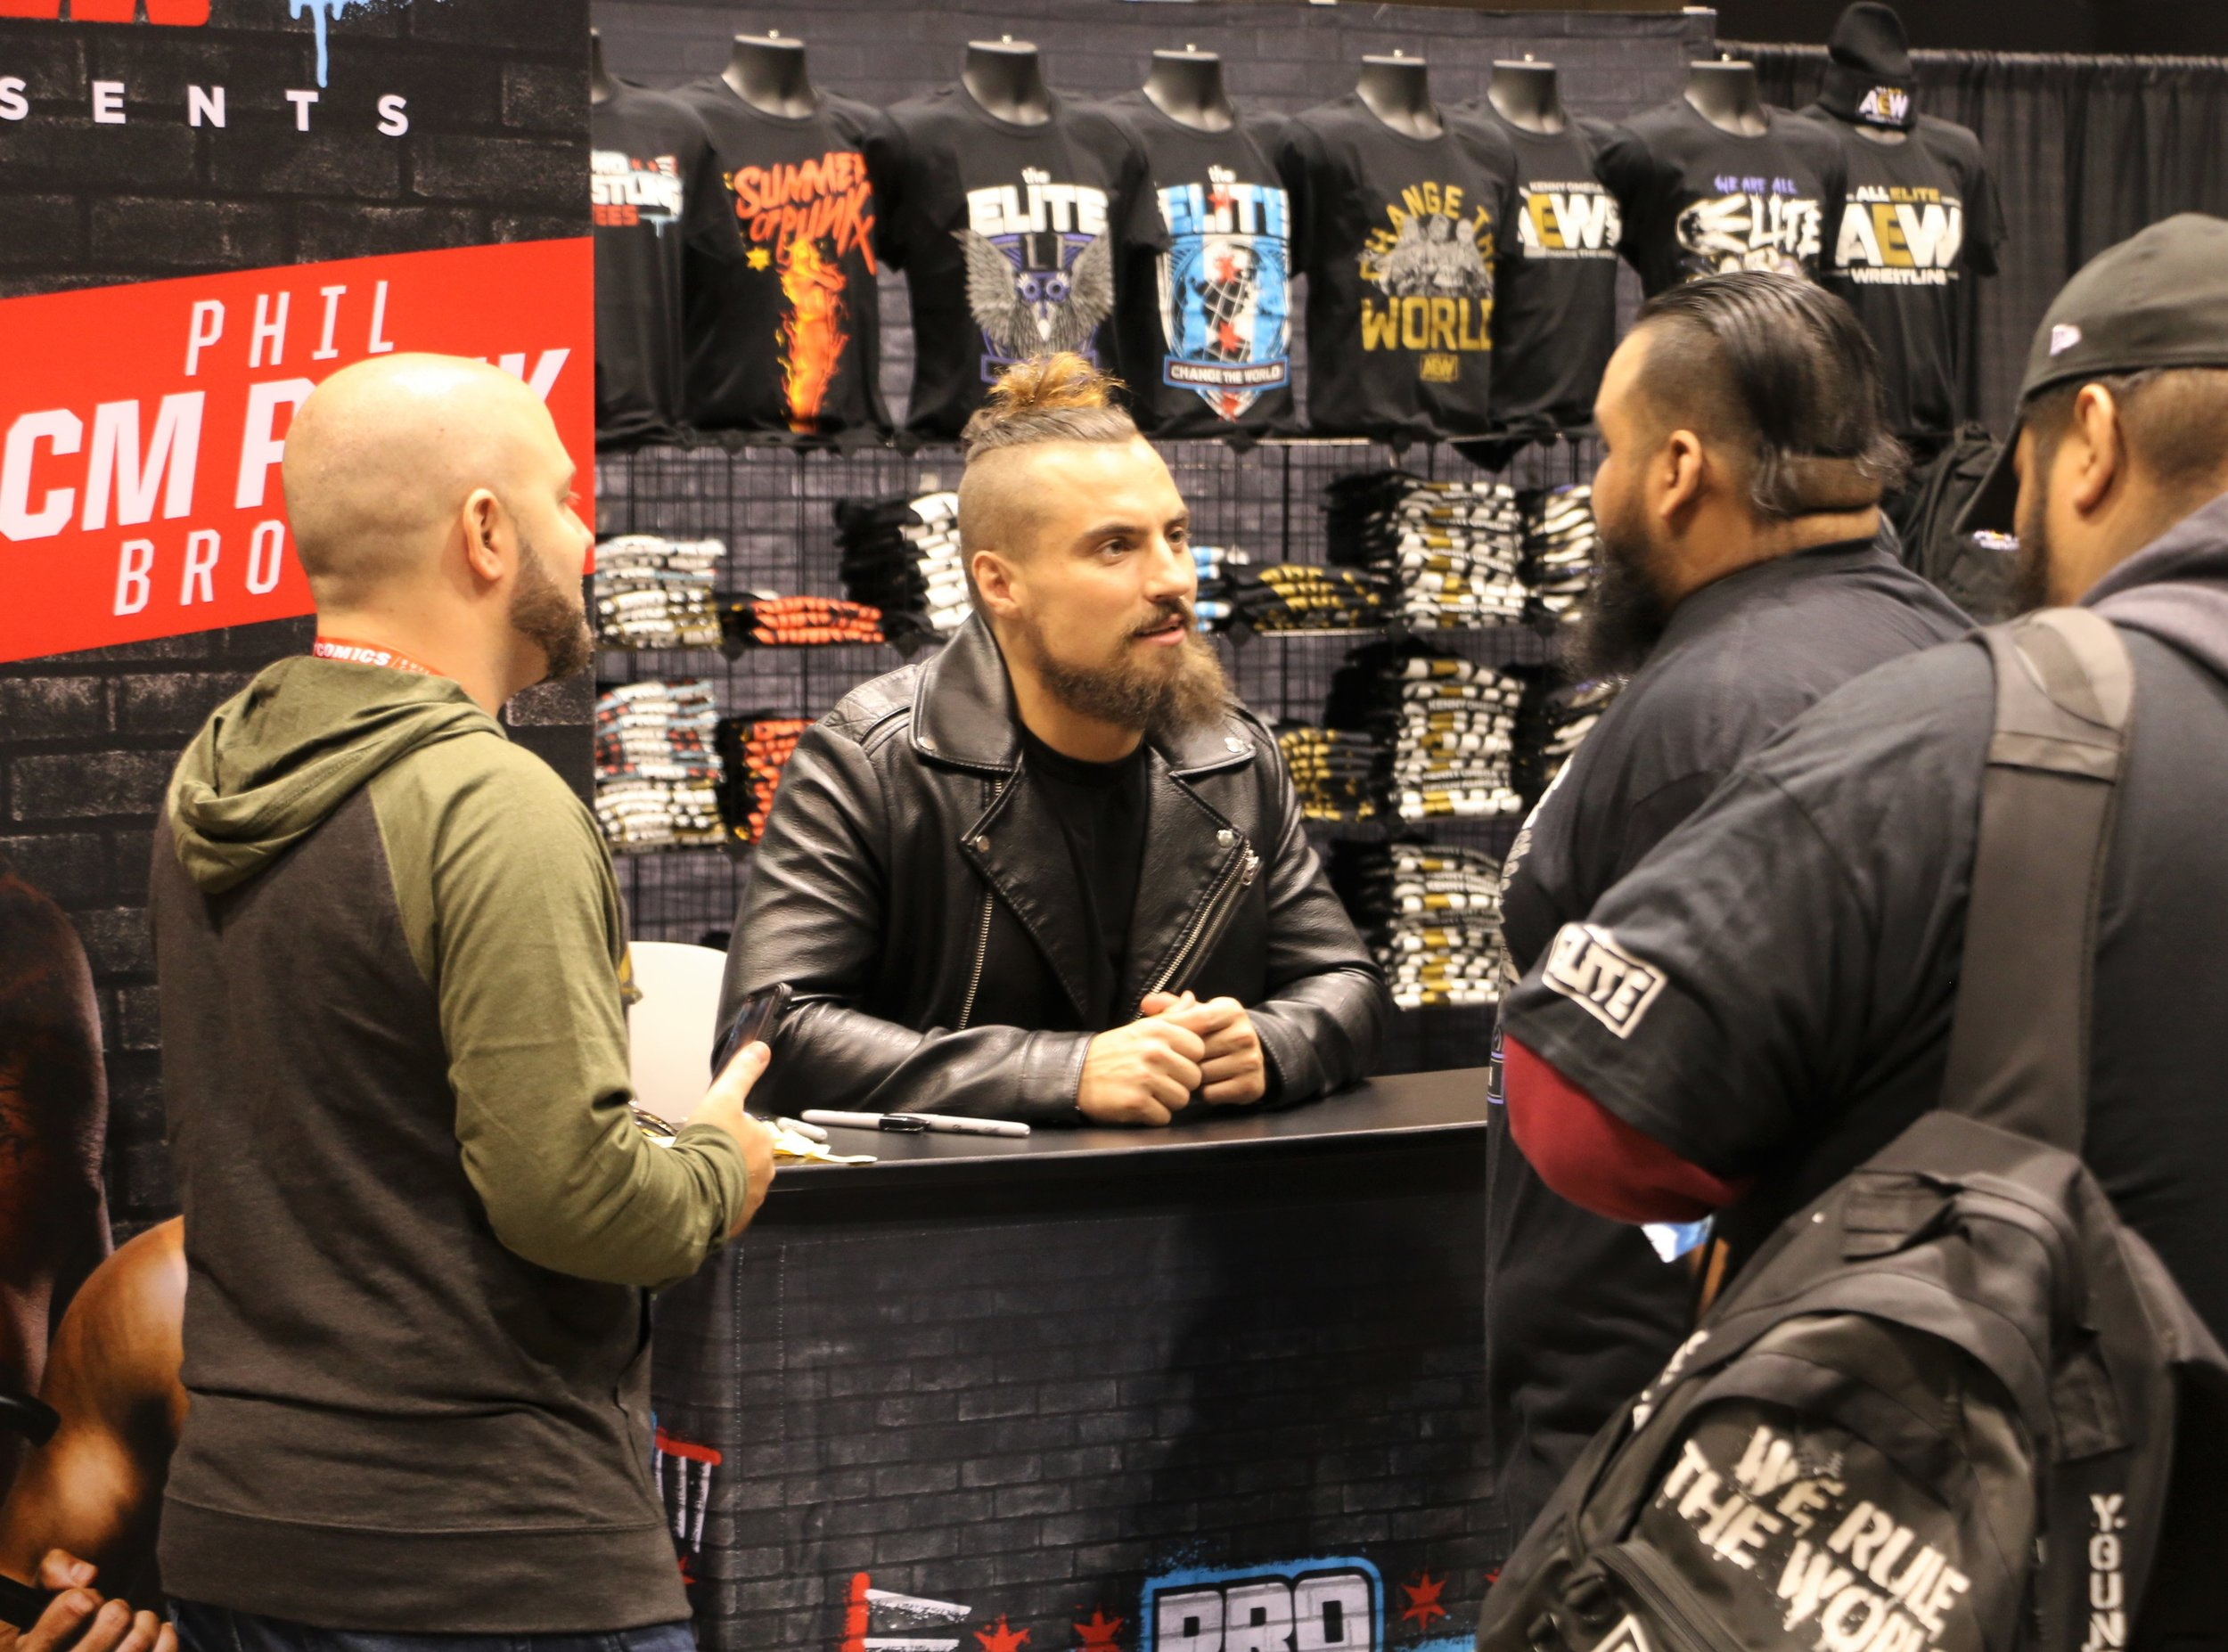 Ring of Honor star Marty Scurll, center, talks with fans at the Pro Wrestling Tees booth.